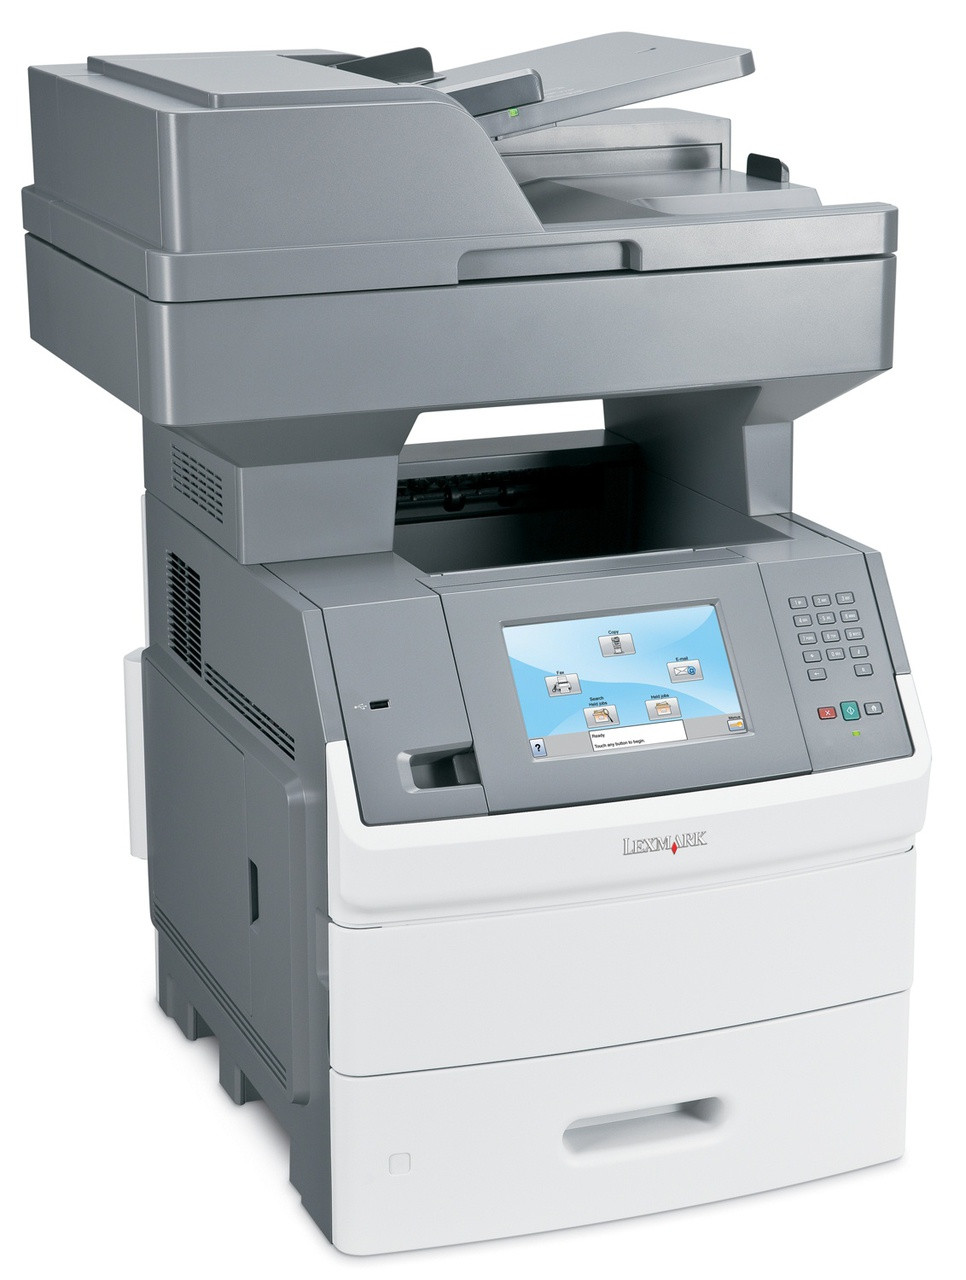 Lexmark x654de MFP - 16M1794 - 654de MFP Multifunction Printer - Lexmark Laser Printer for sale